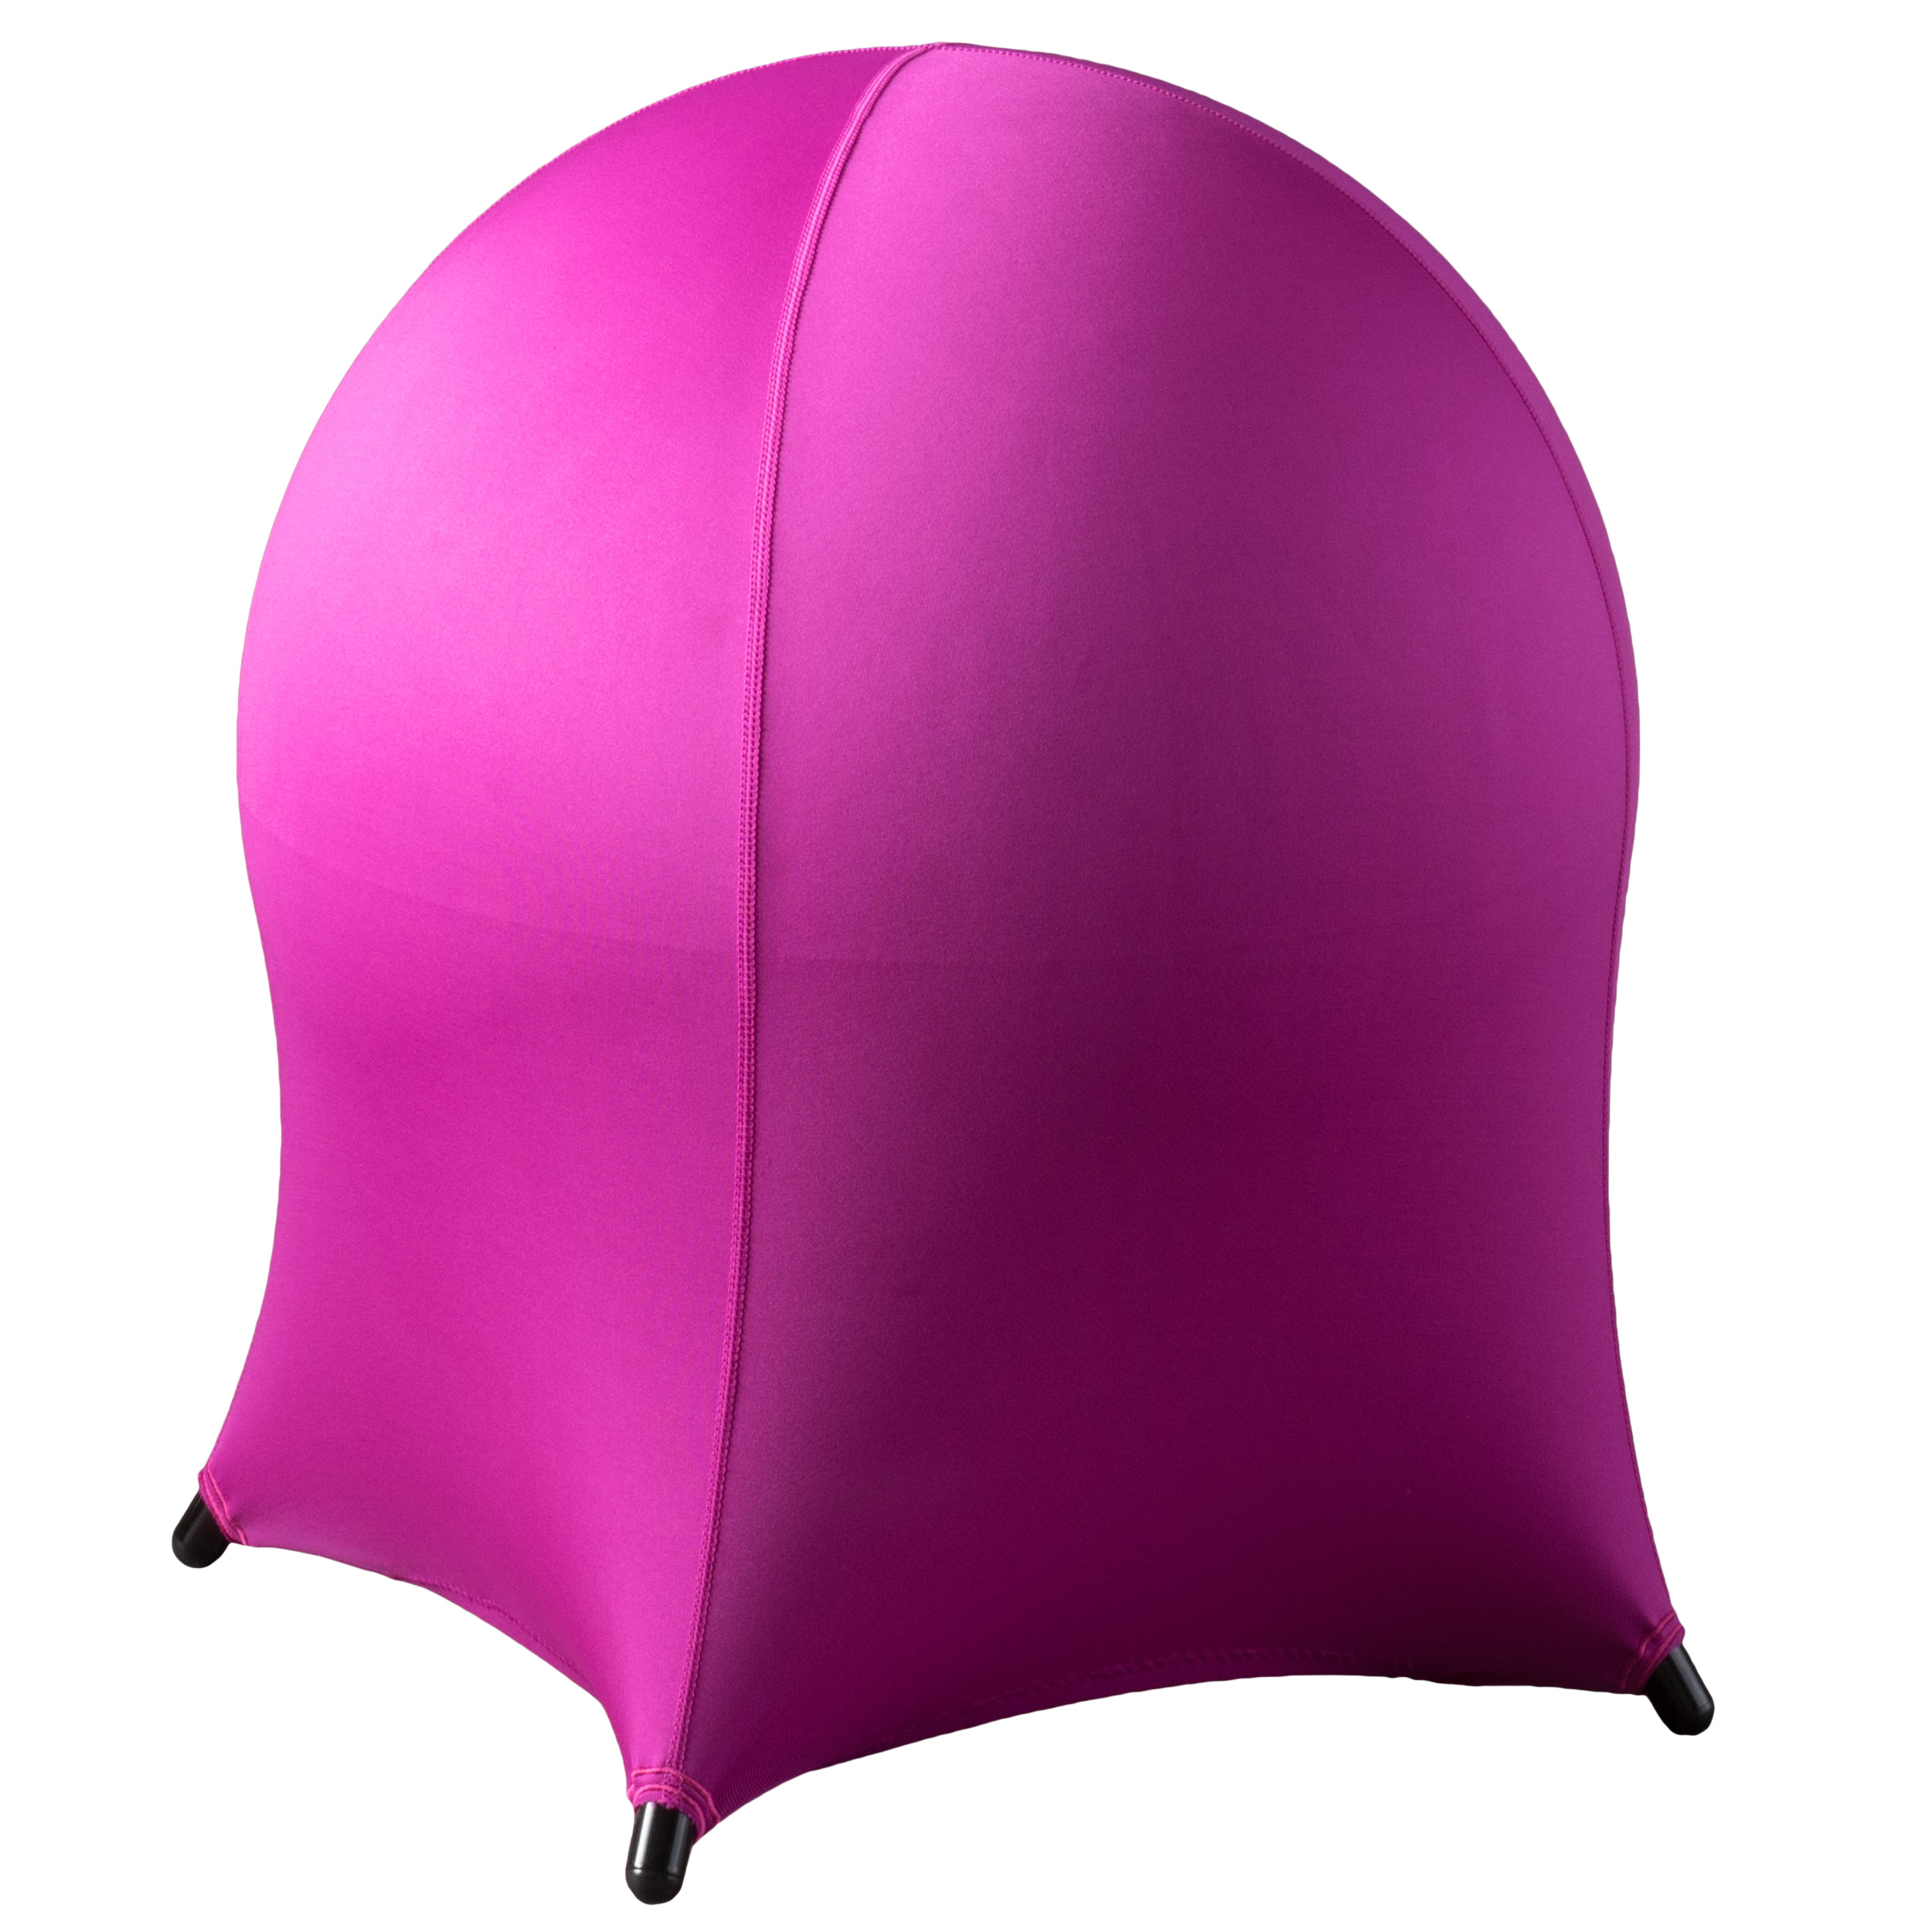 Pink ball chairs - Denise Austin Home Yoga Ball Chair